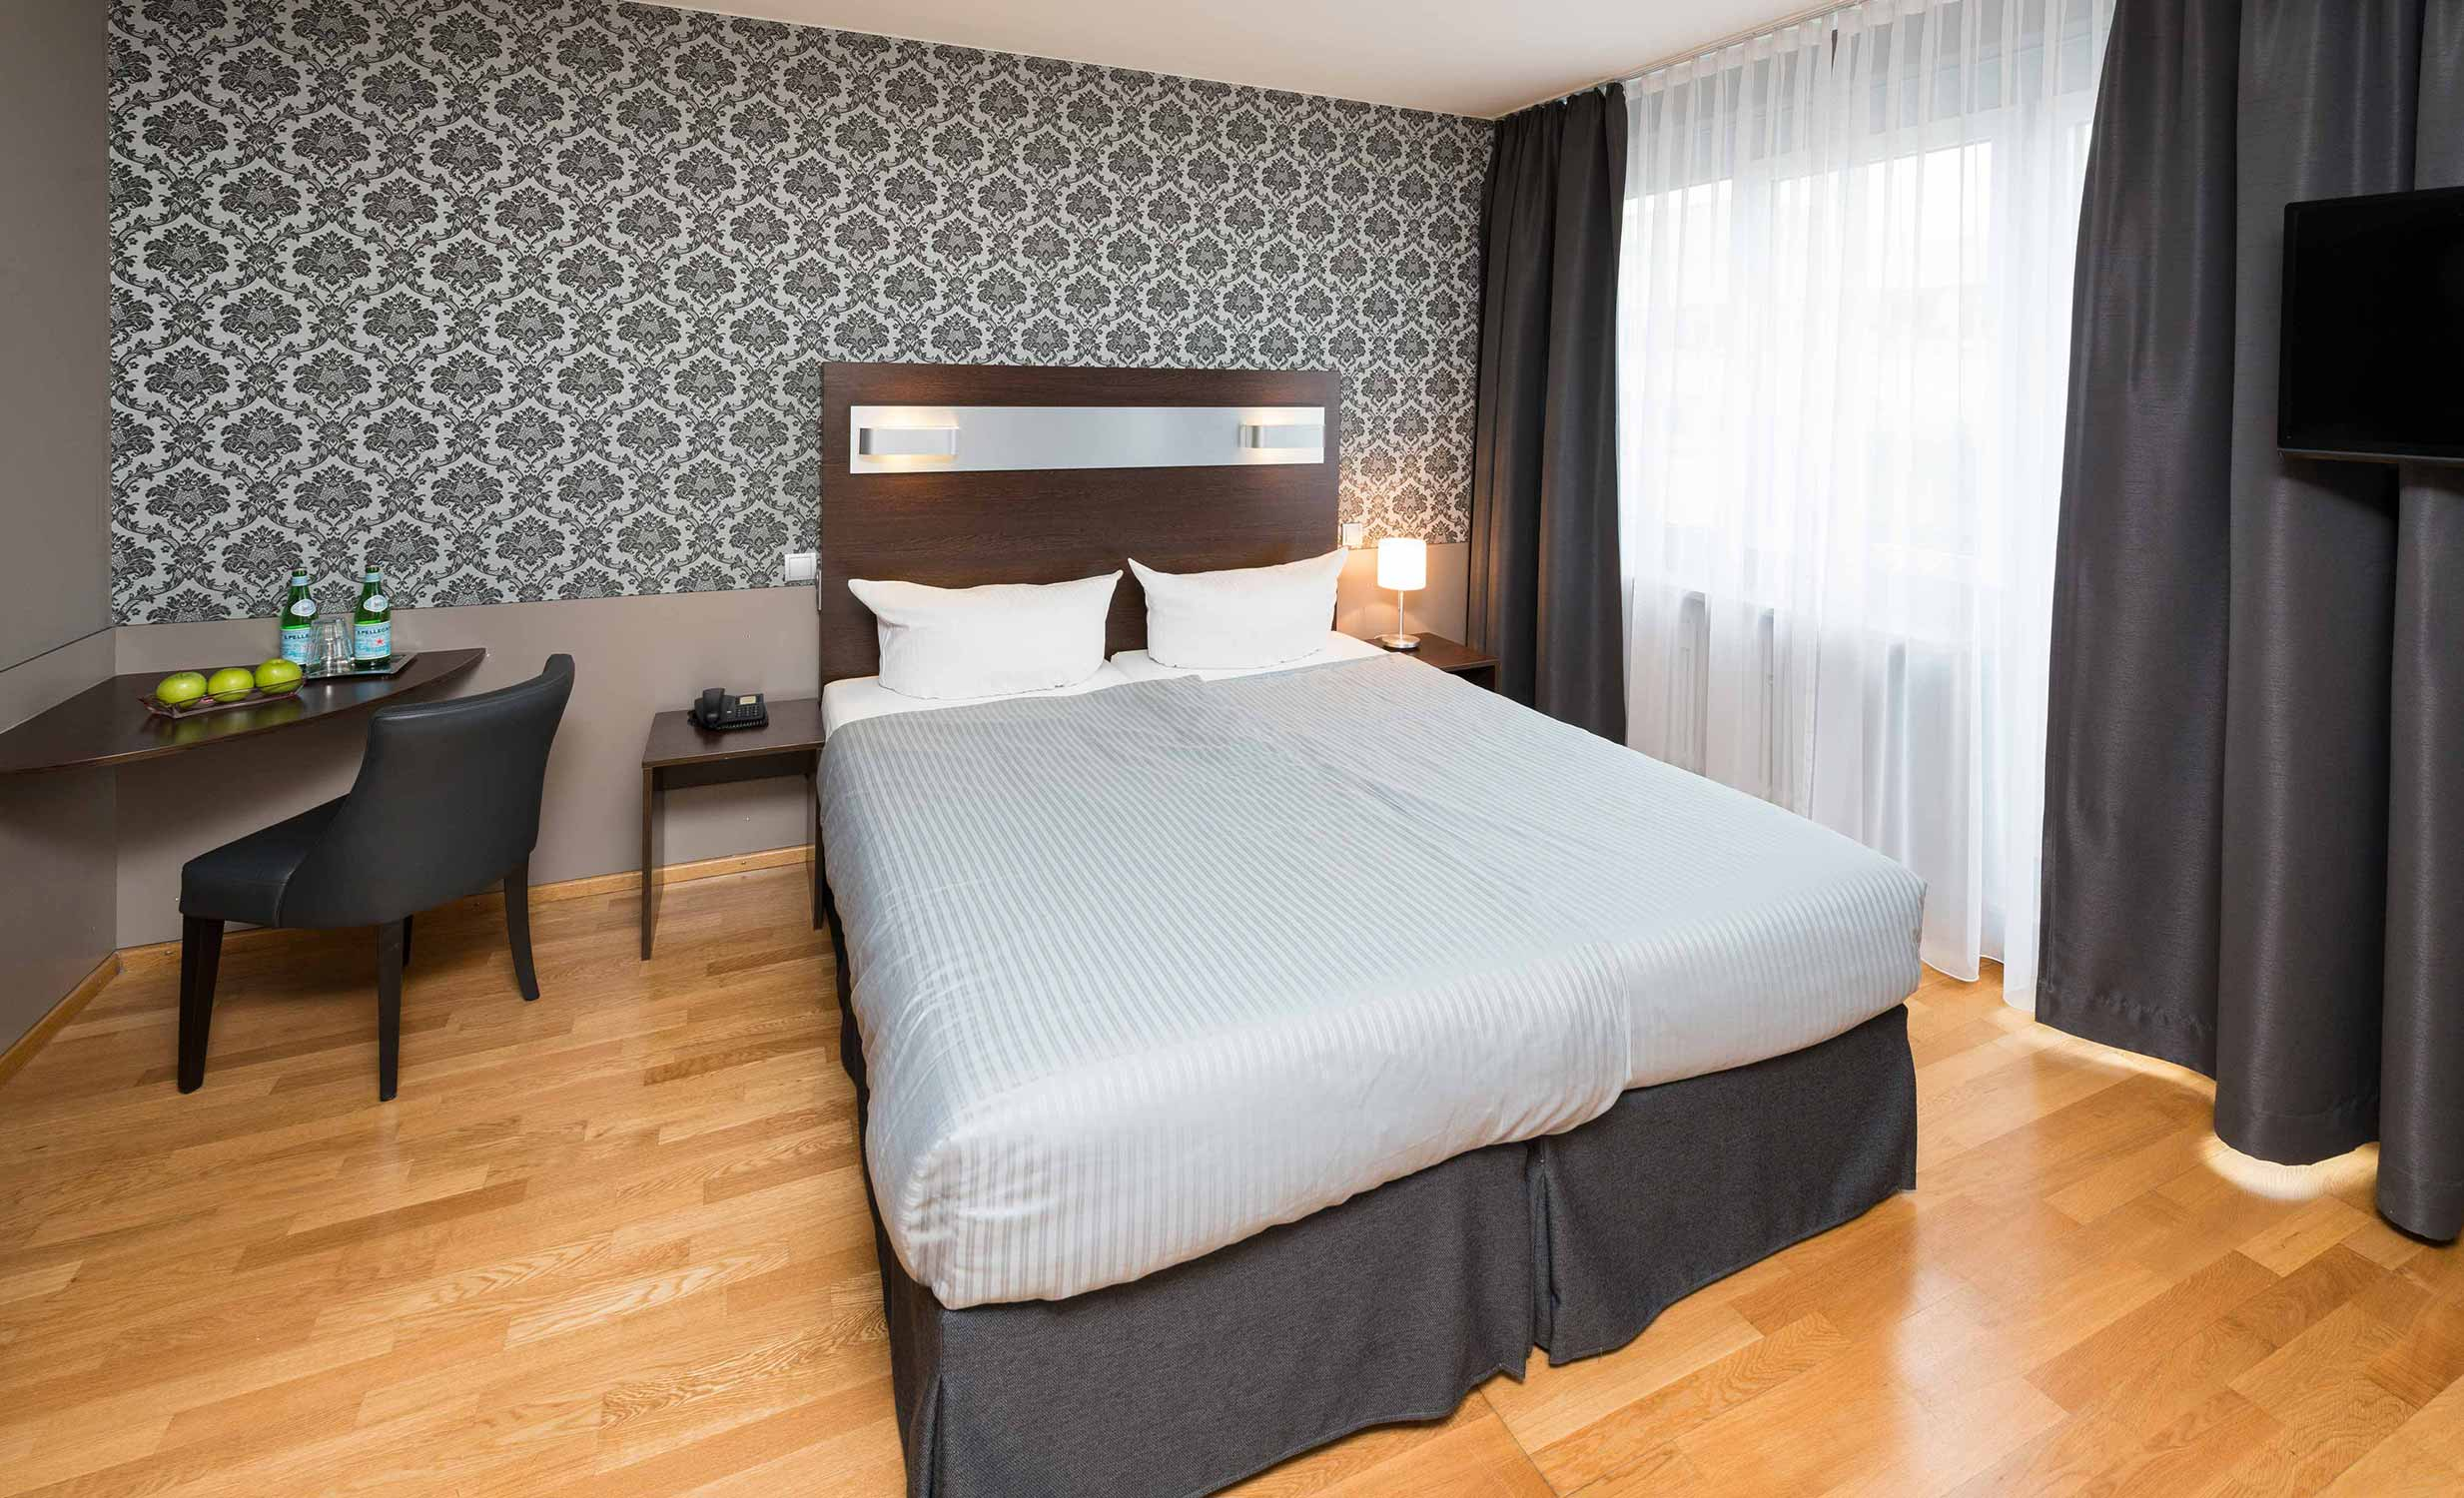 Munich Inn Design Hotel camera doppia